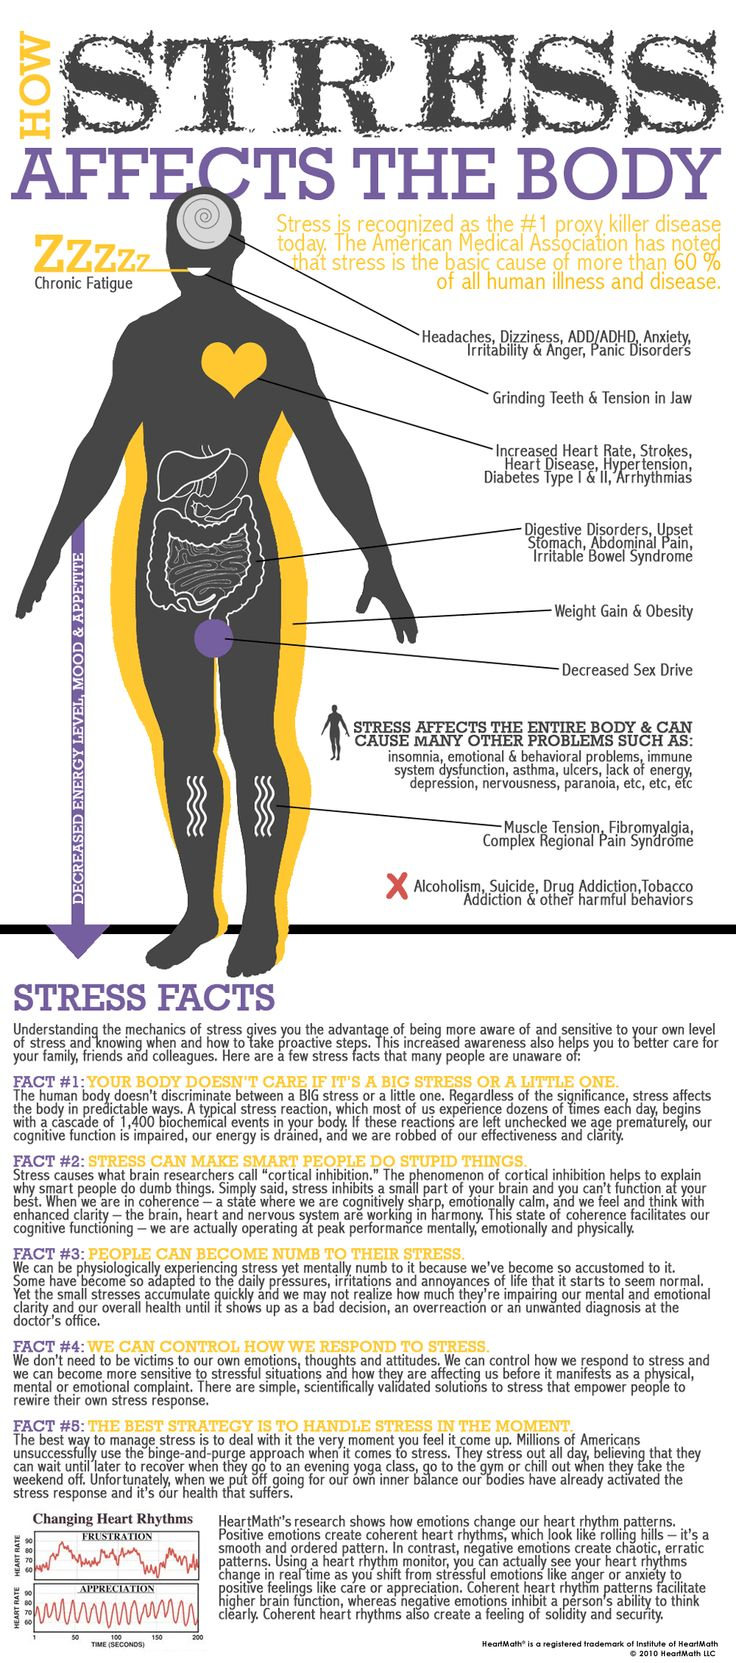 How Stress Affects the BodyStress Free, Fit, Life, The Body, Beautiful, Healthy, Well, Infographic, Weights Loss